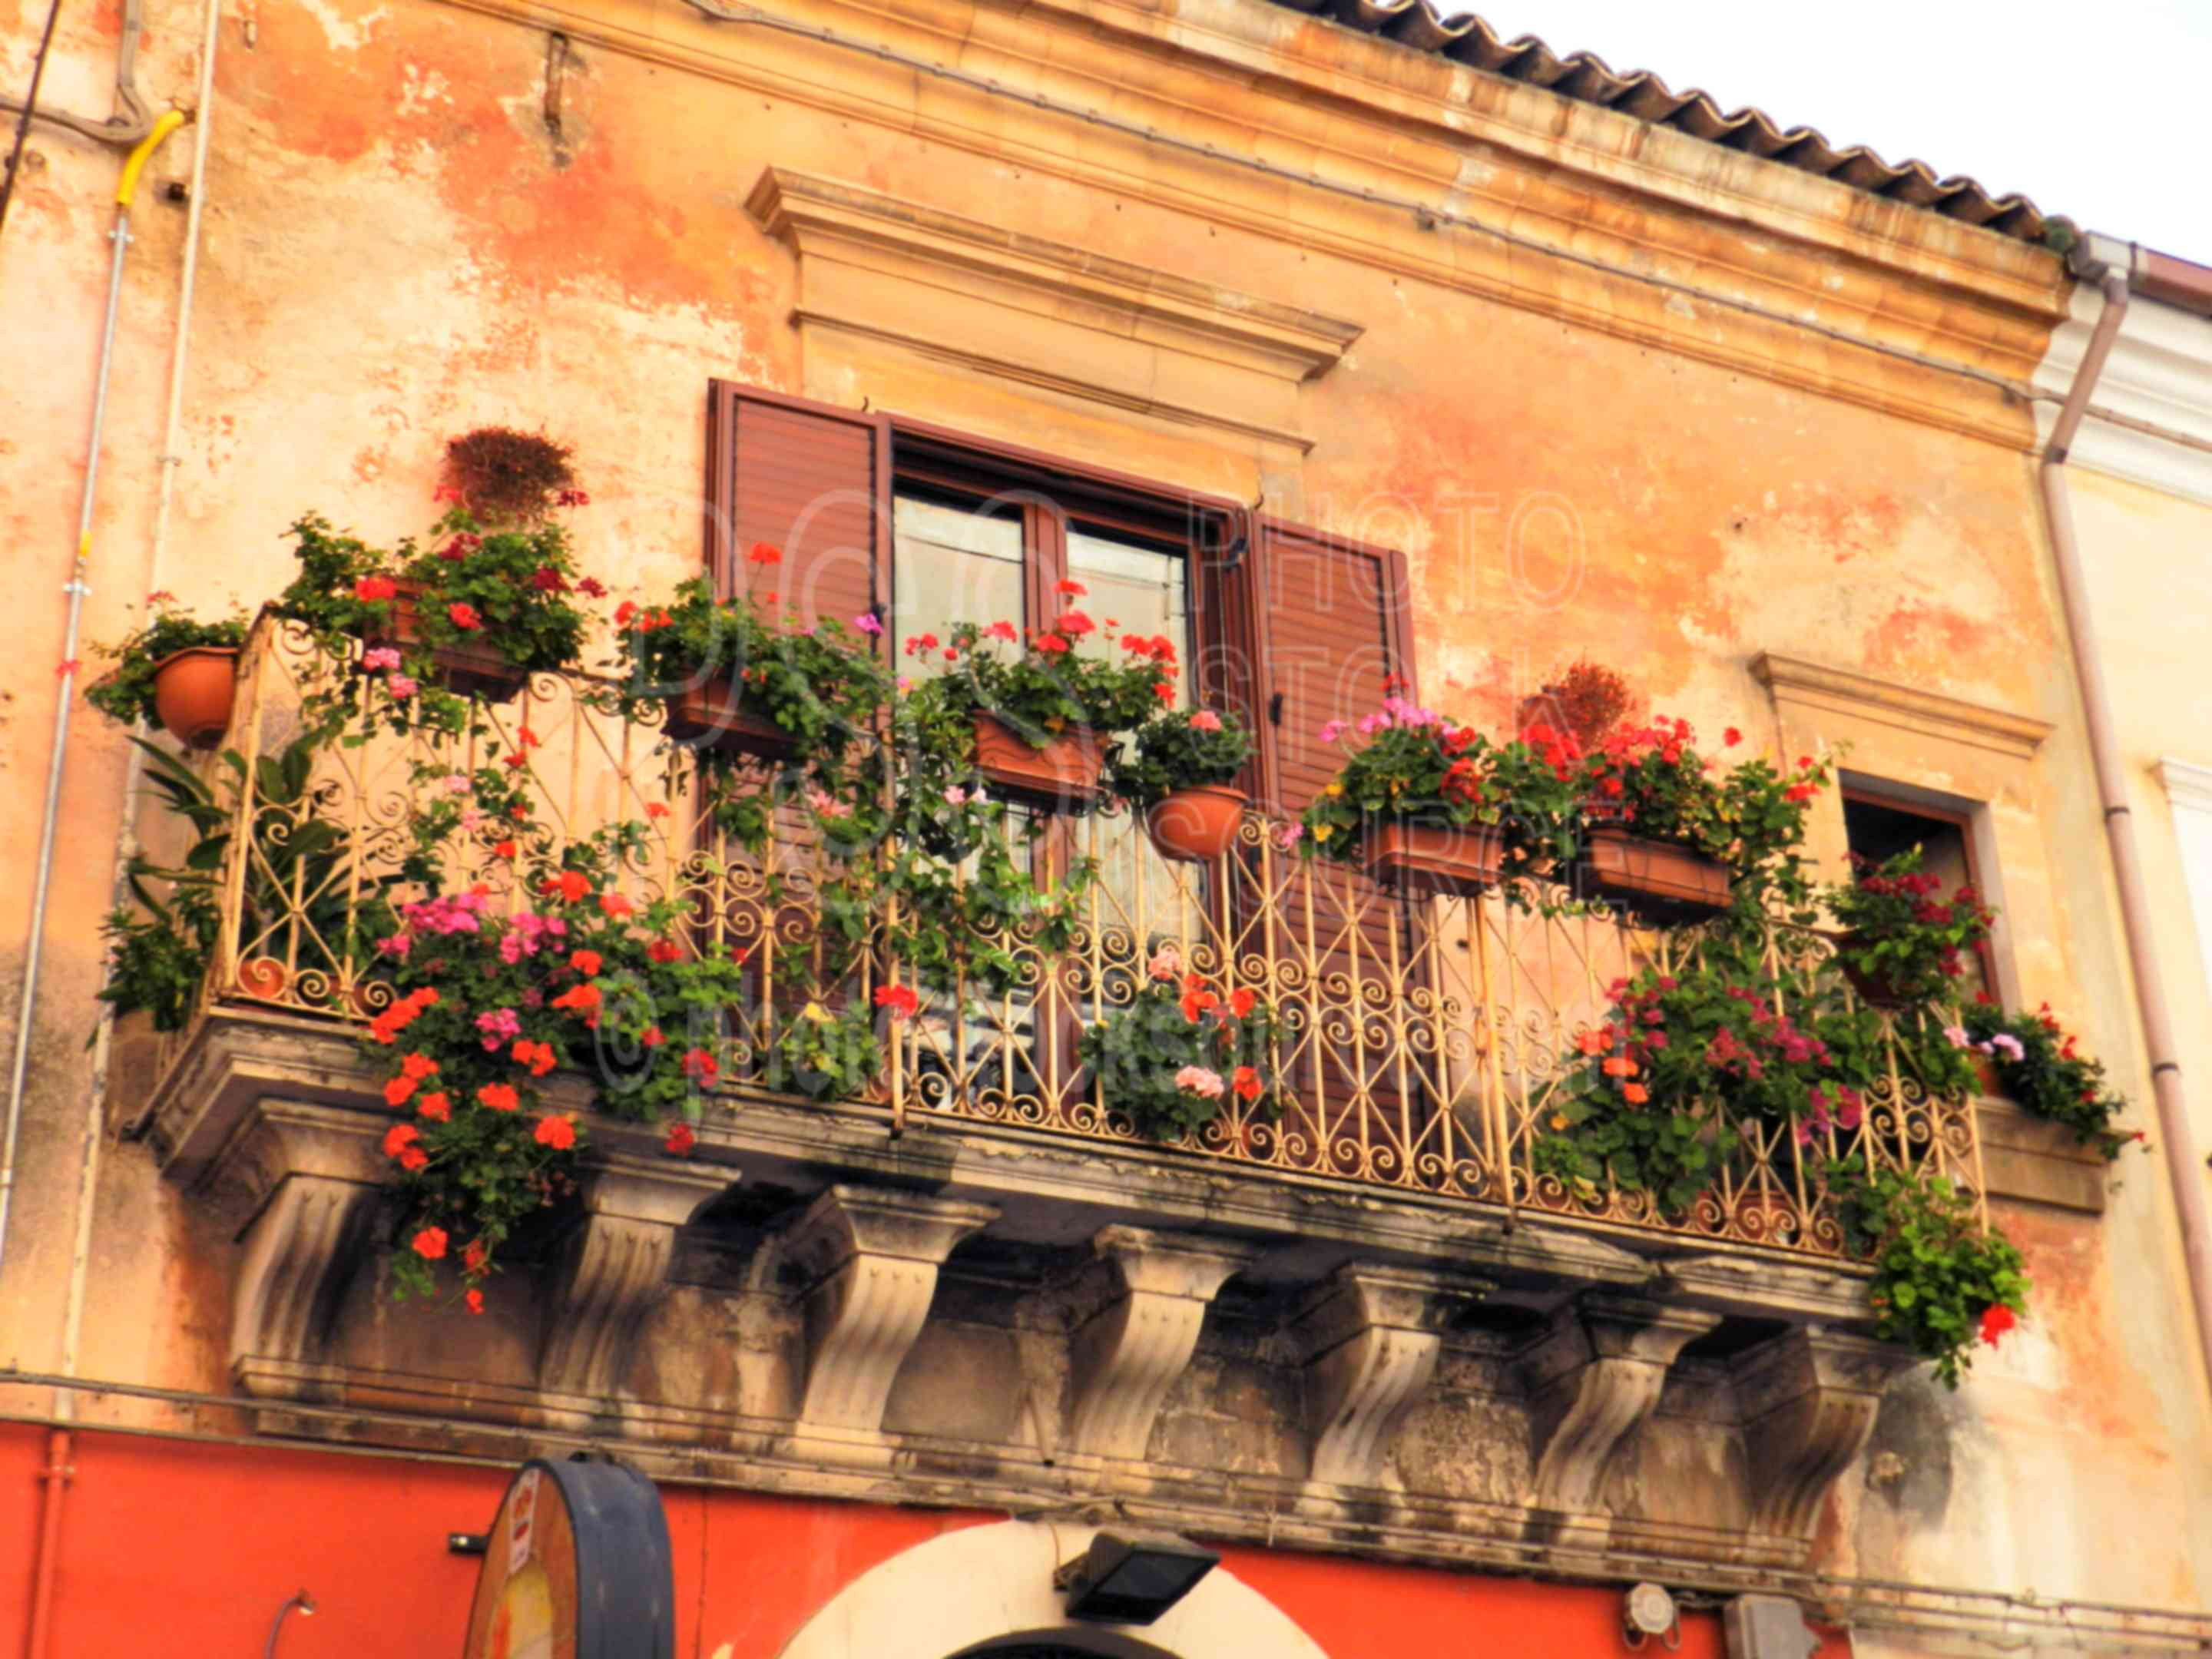 Baroque Balcony with Flowers,ragusa,ragusa ibl,baroque,balcony,wrought iron,flowers,flower pots